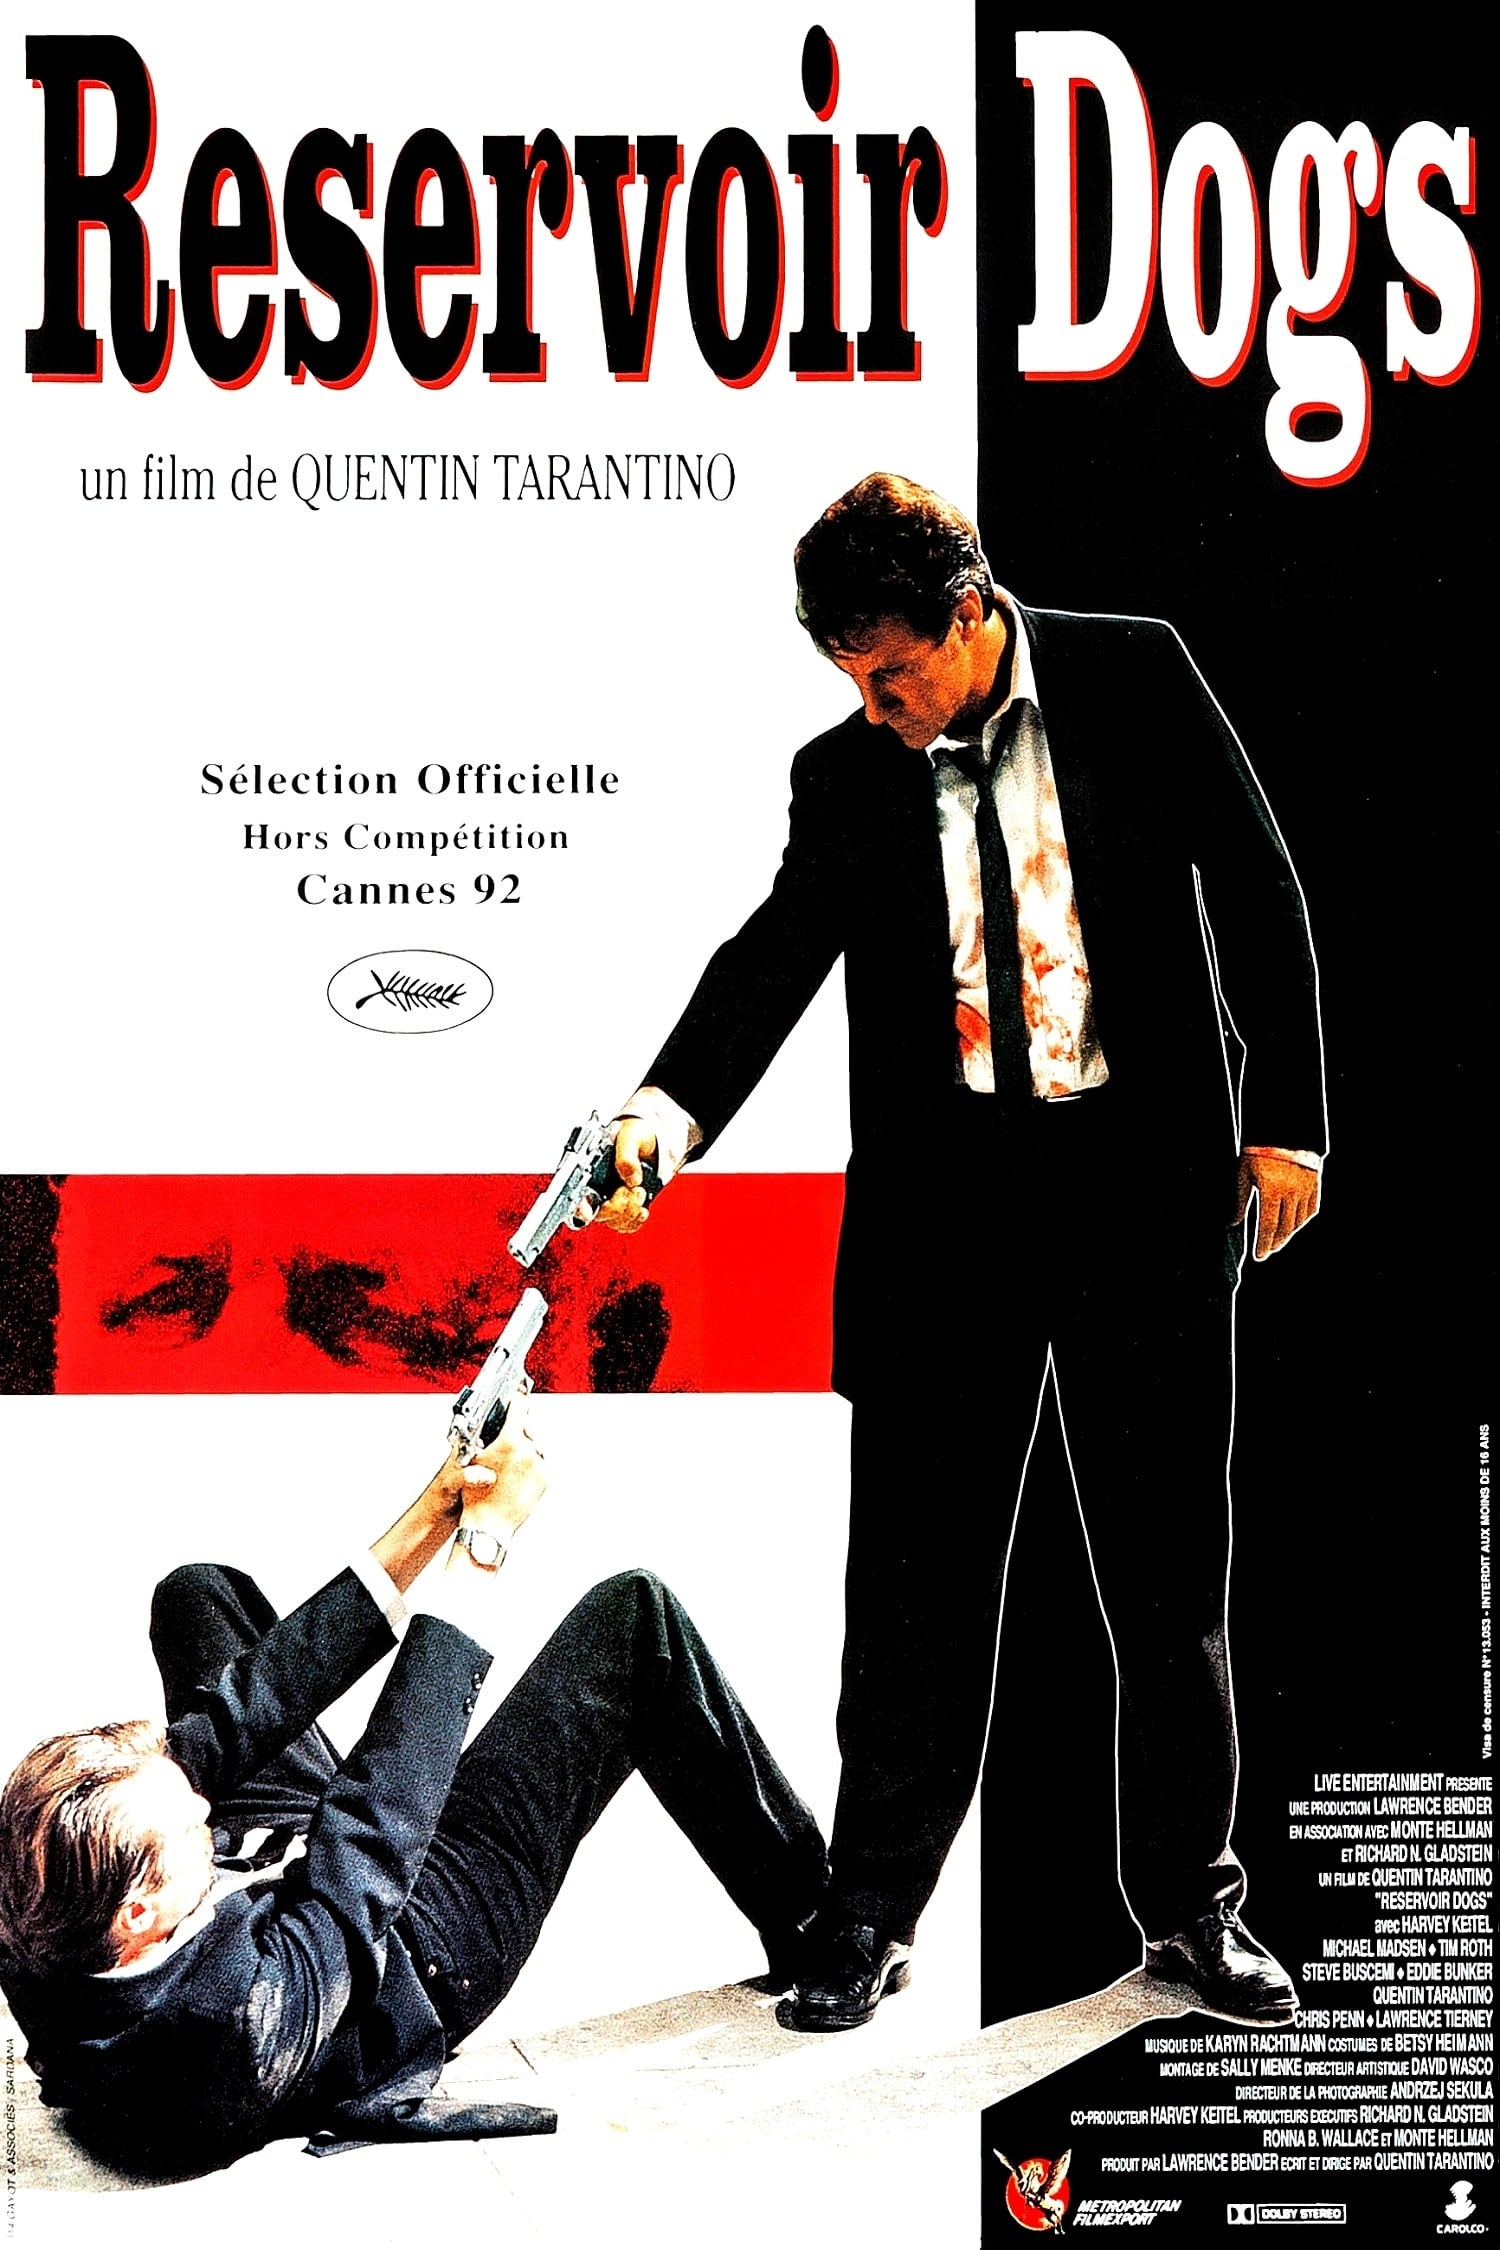 Reservoir Dogs (1992) - Rotten Tomatoes